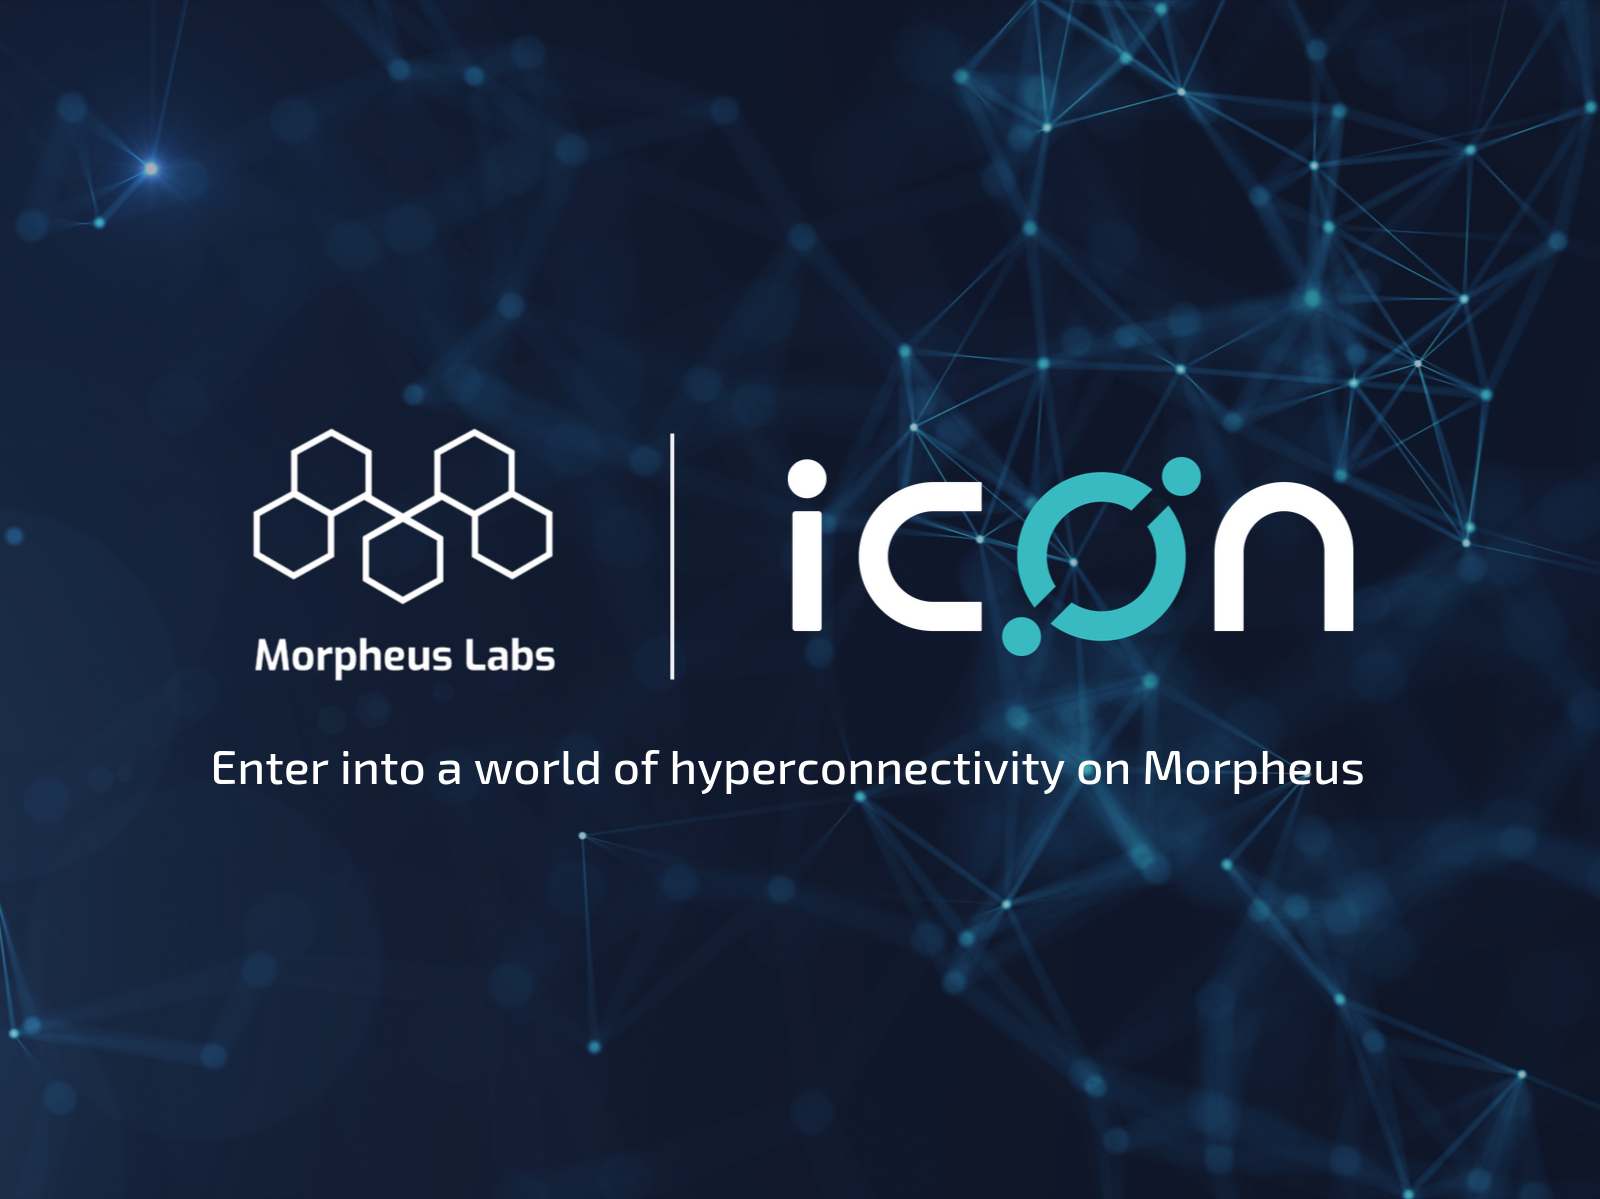 Morpheus Labs onboard ICON — Entering Into a World of True Hyperconnectivity